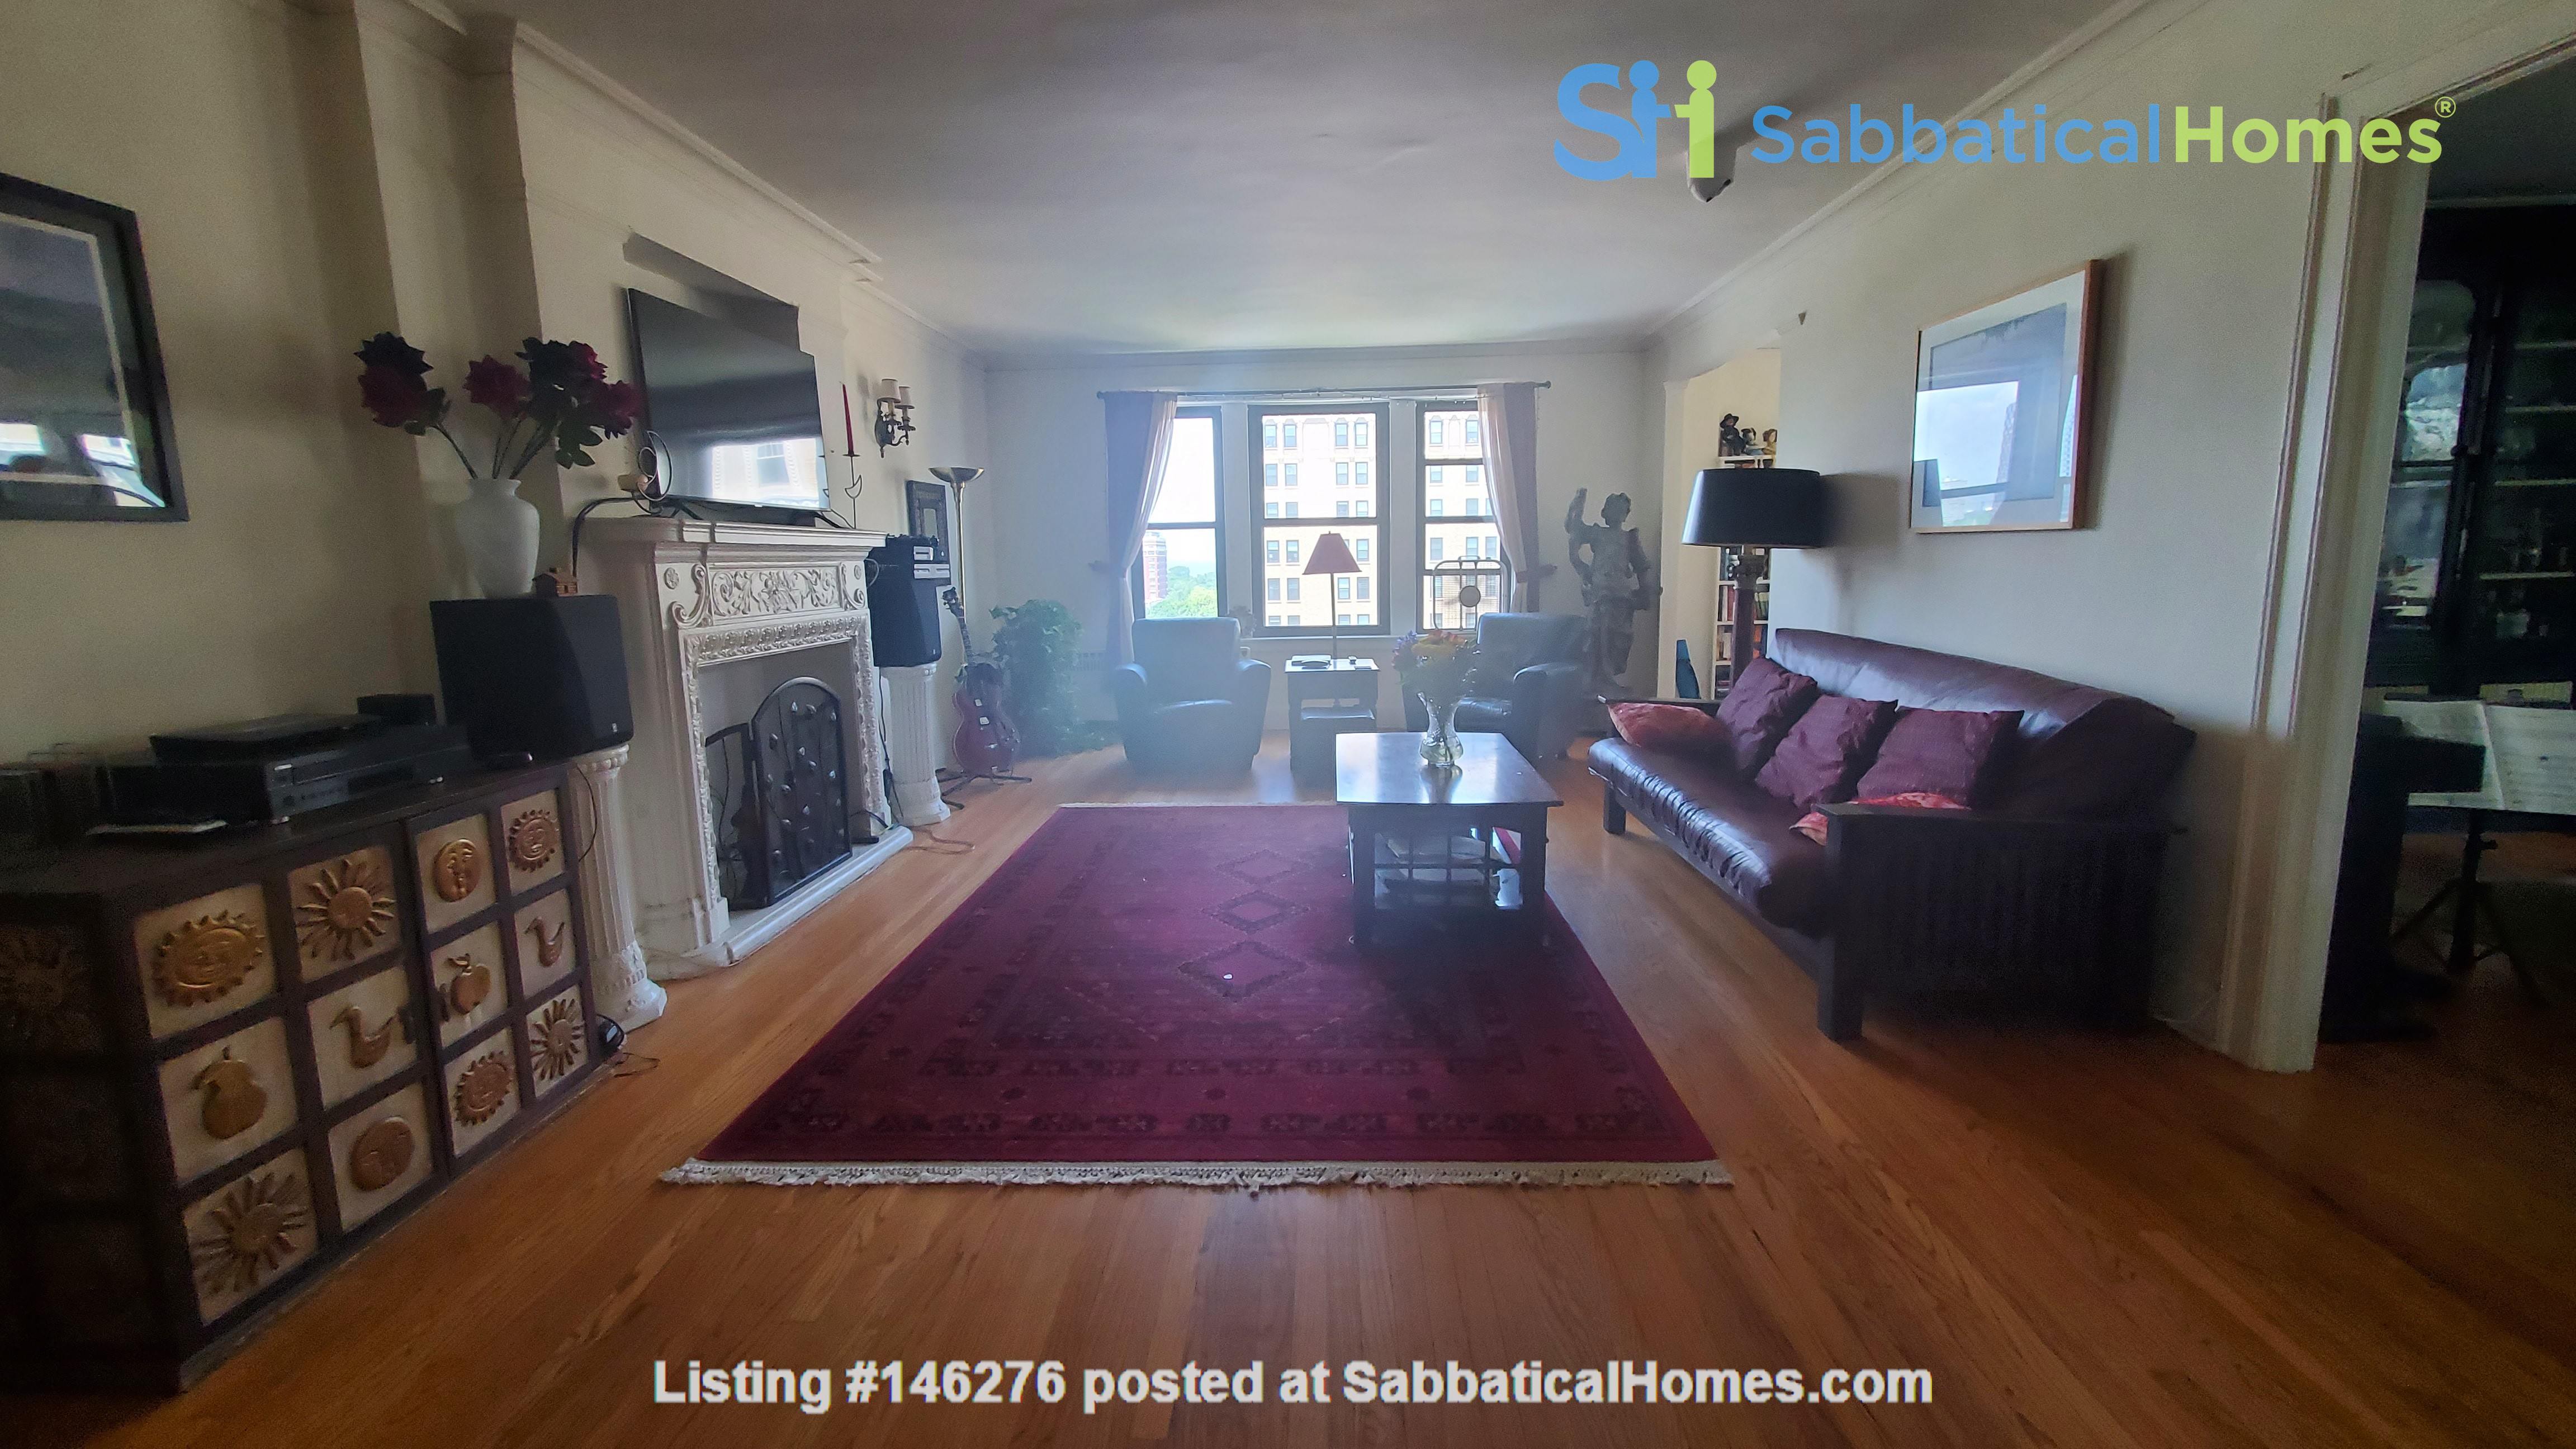 2 Bed/2 Bath Fully Furnished Lakefront Apartment Home Rental in Chicago 2